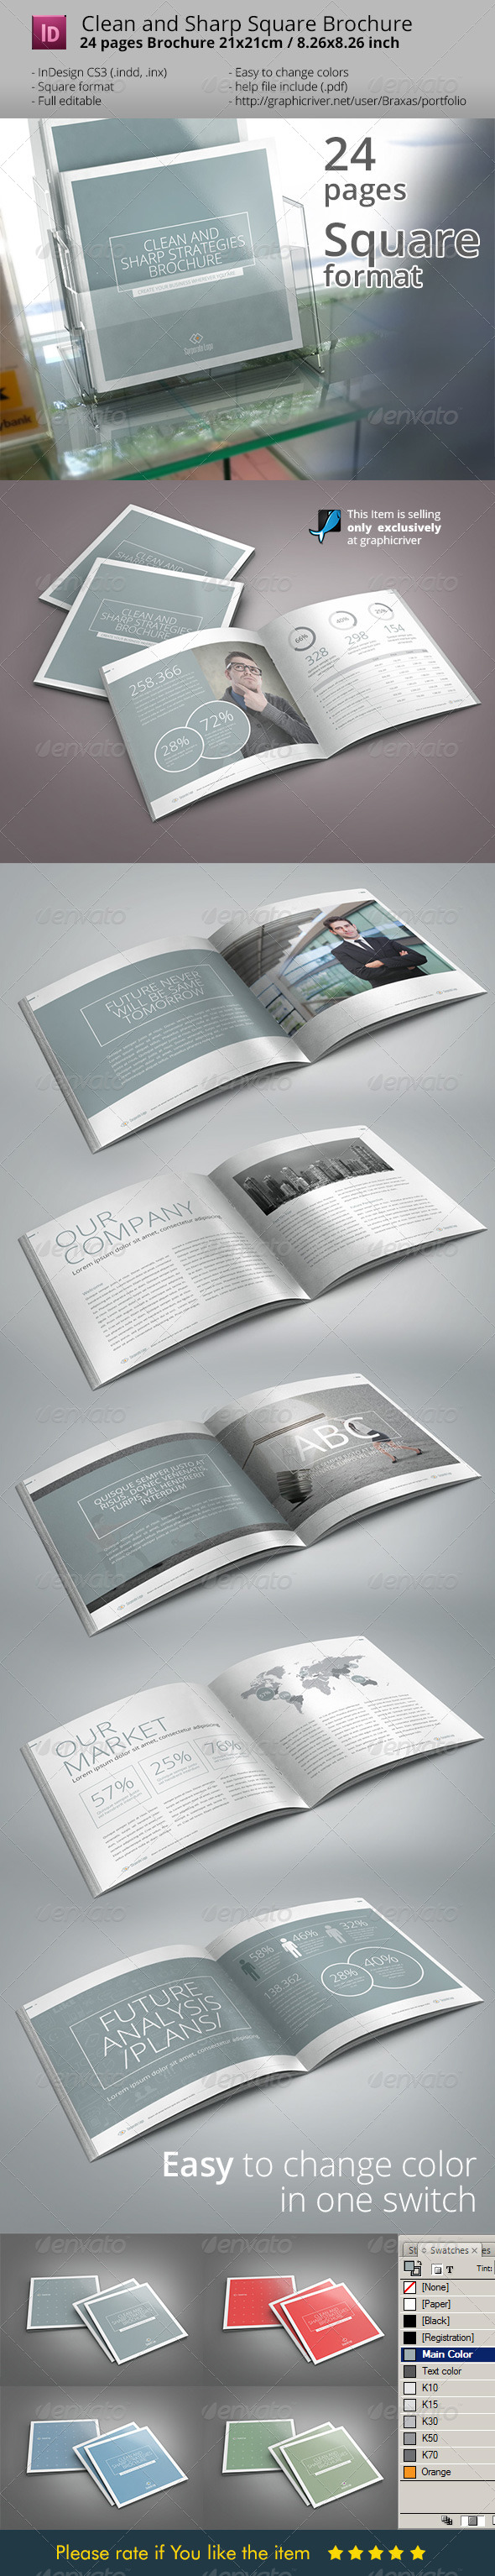 Sharp and Clean Square Indesign Brochure Template - Informational Brochures